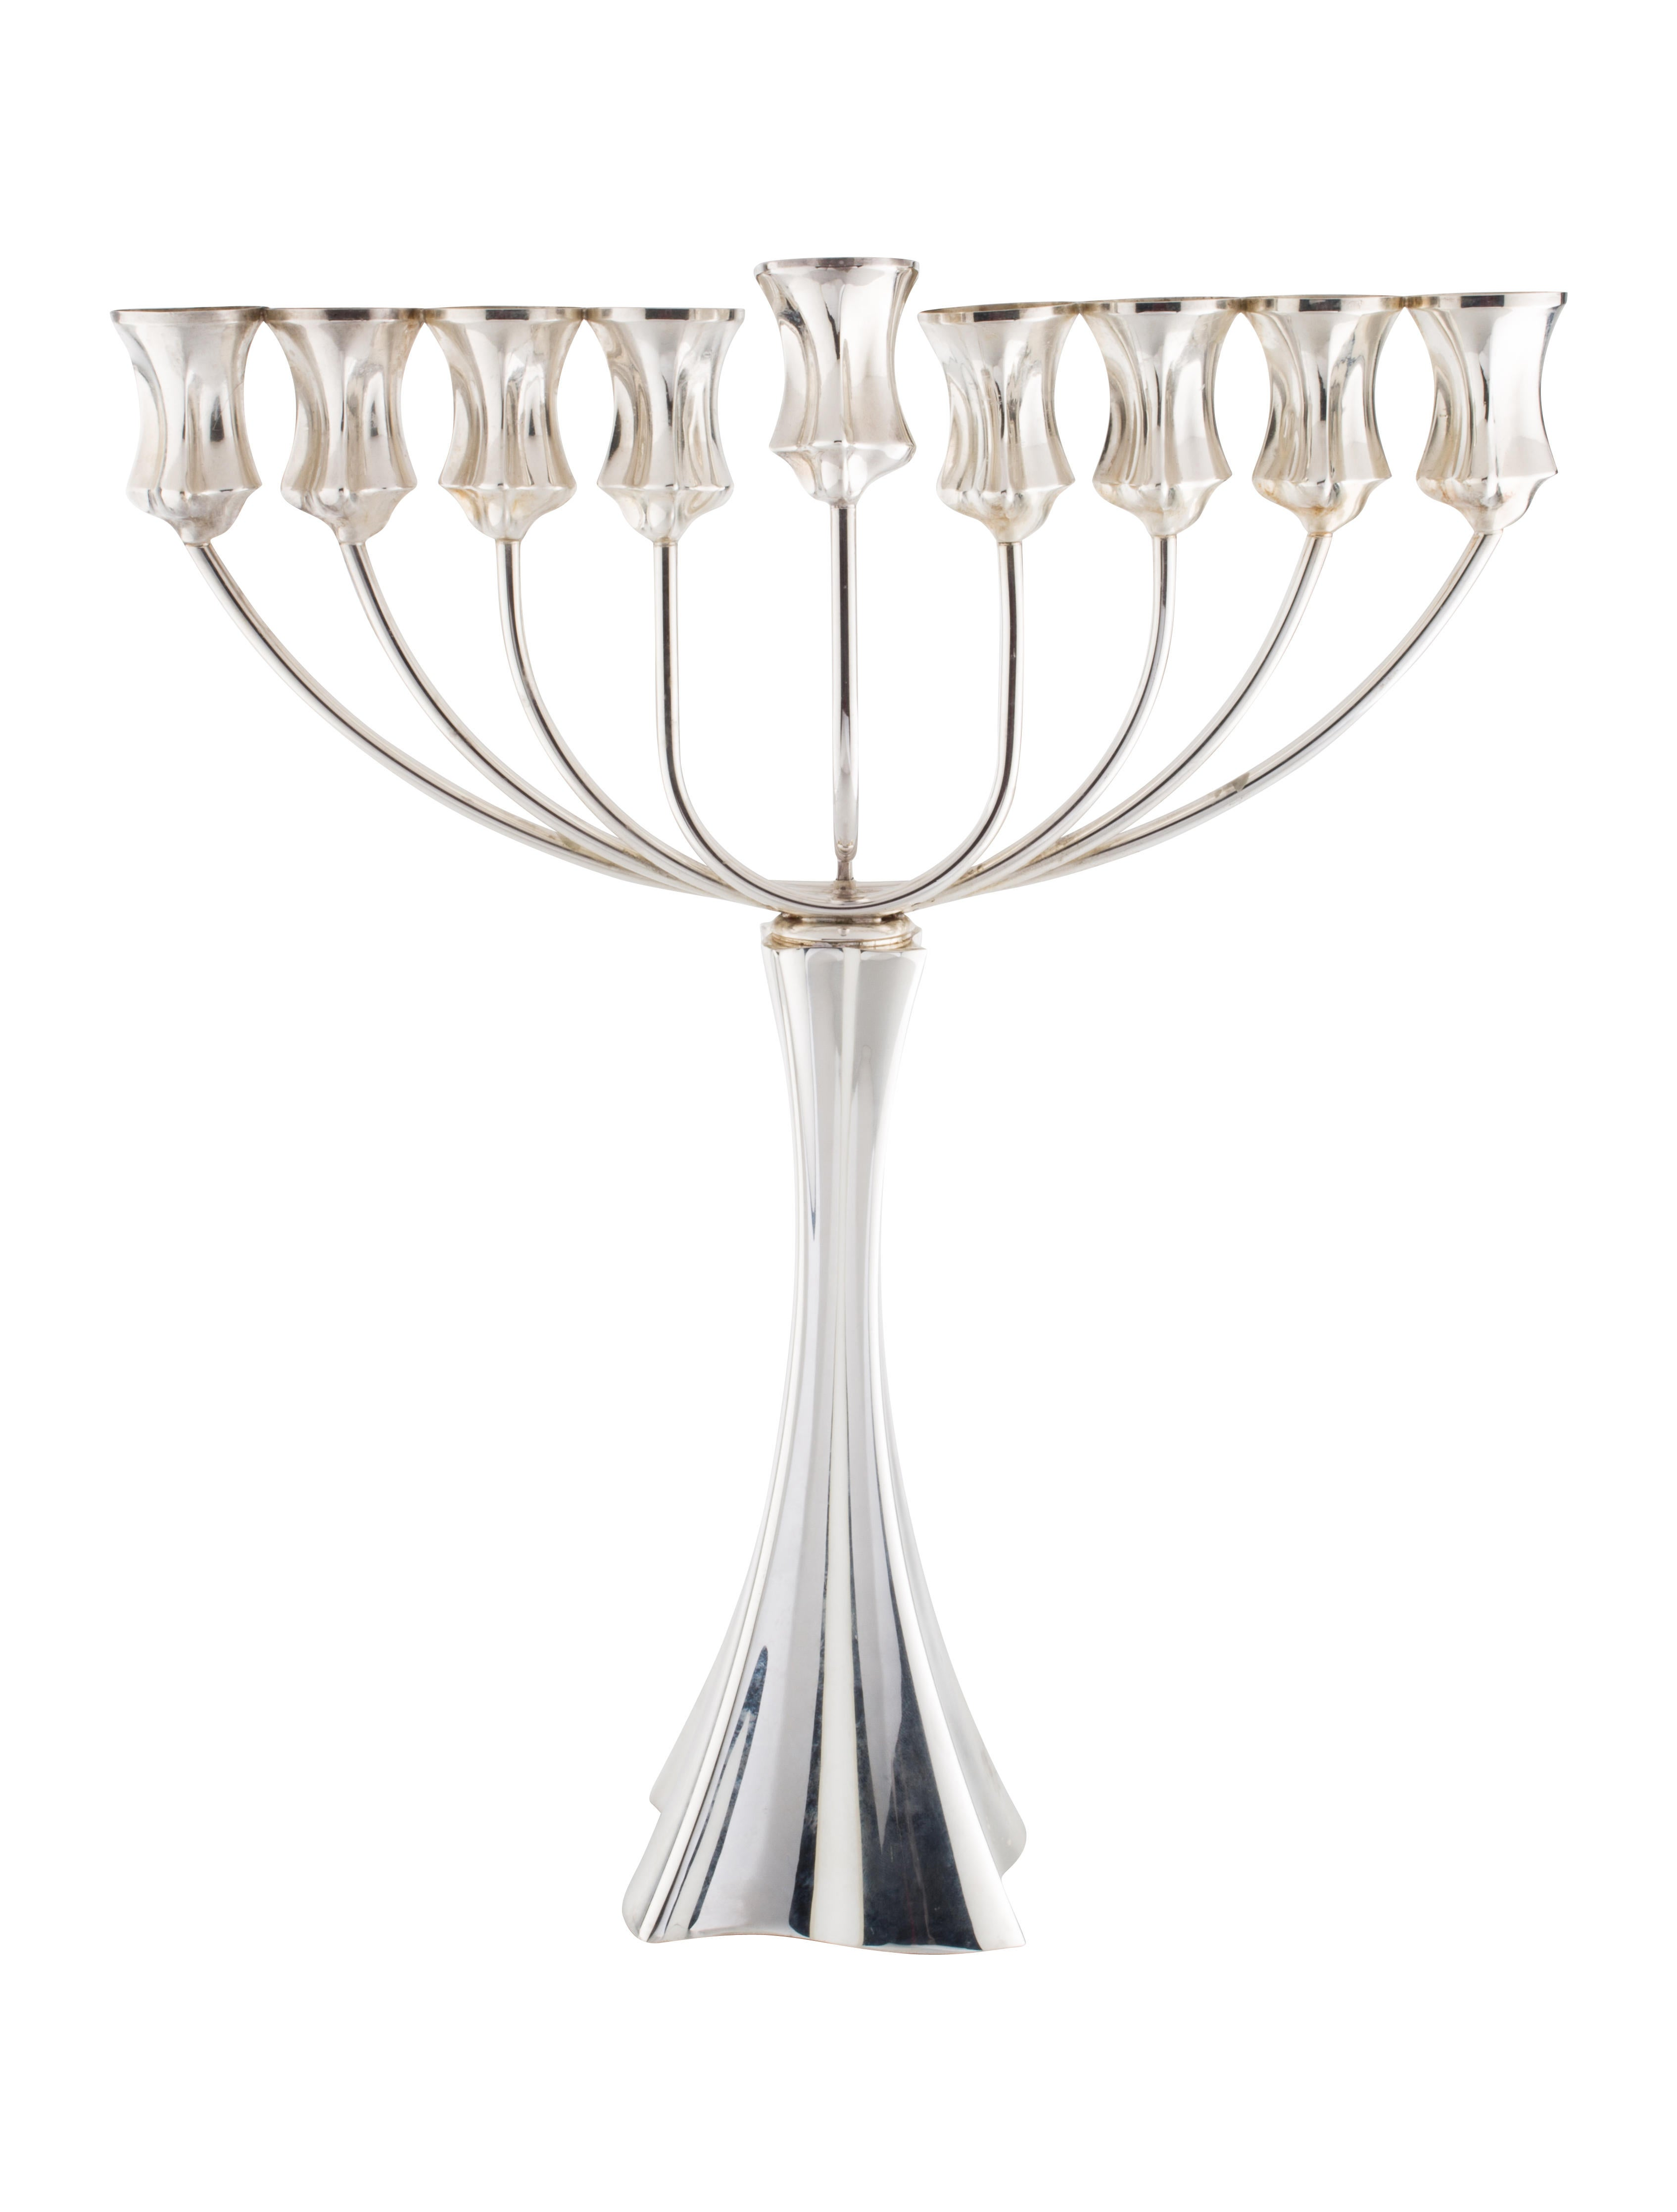 Sterling silver hazorfim candelabra decor and for Artistic accents genuine silver decoration